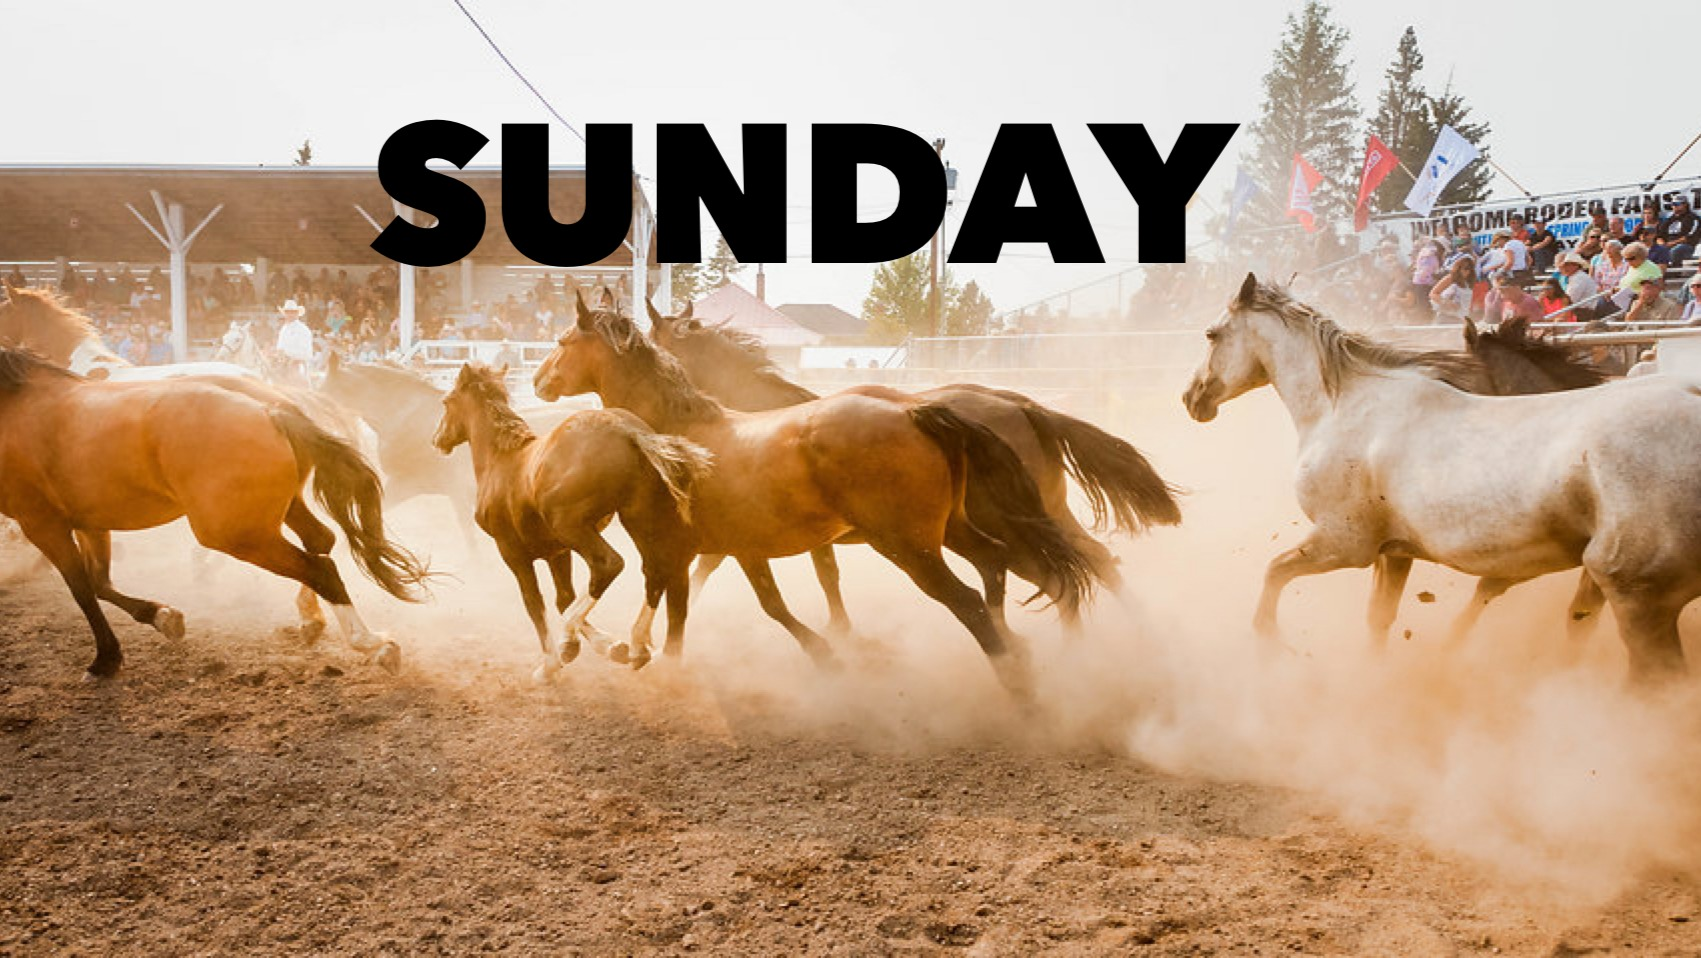 SUNDAY - Meagher County Labor Day Rodeo 2021